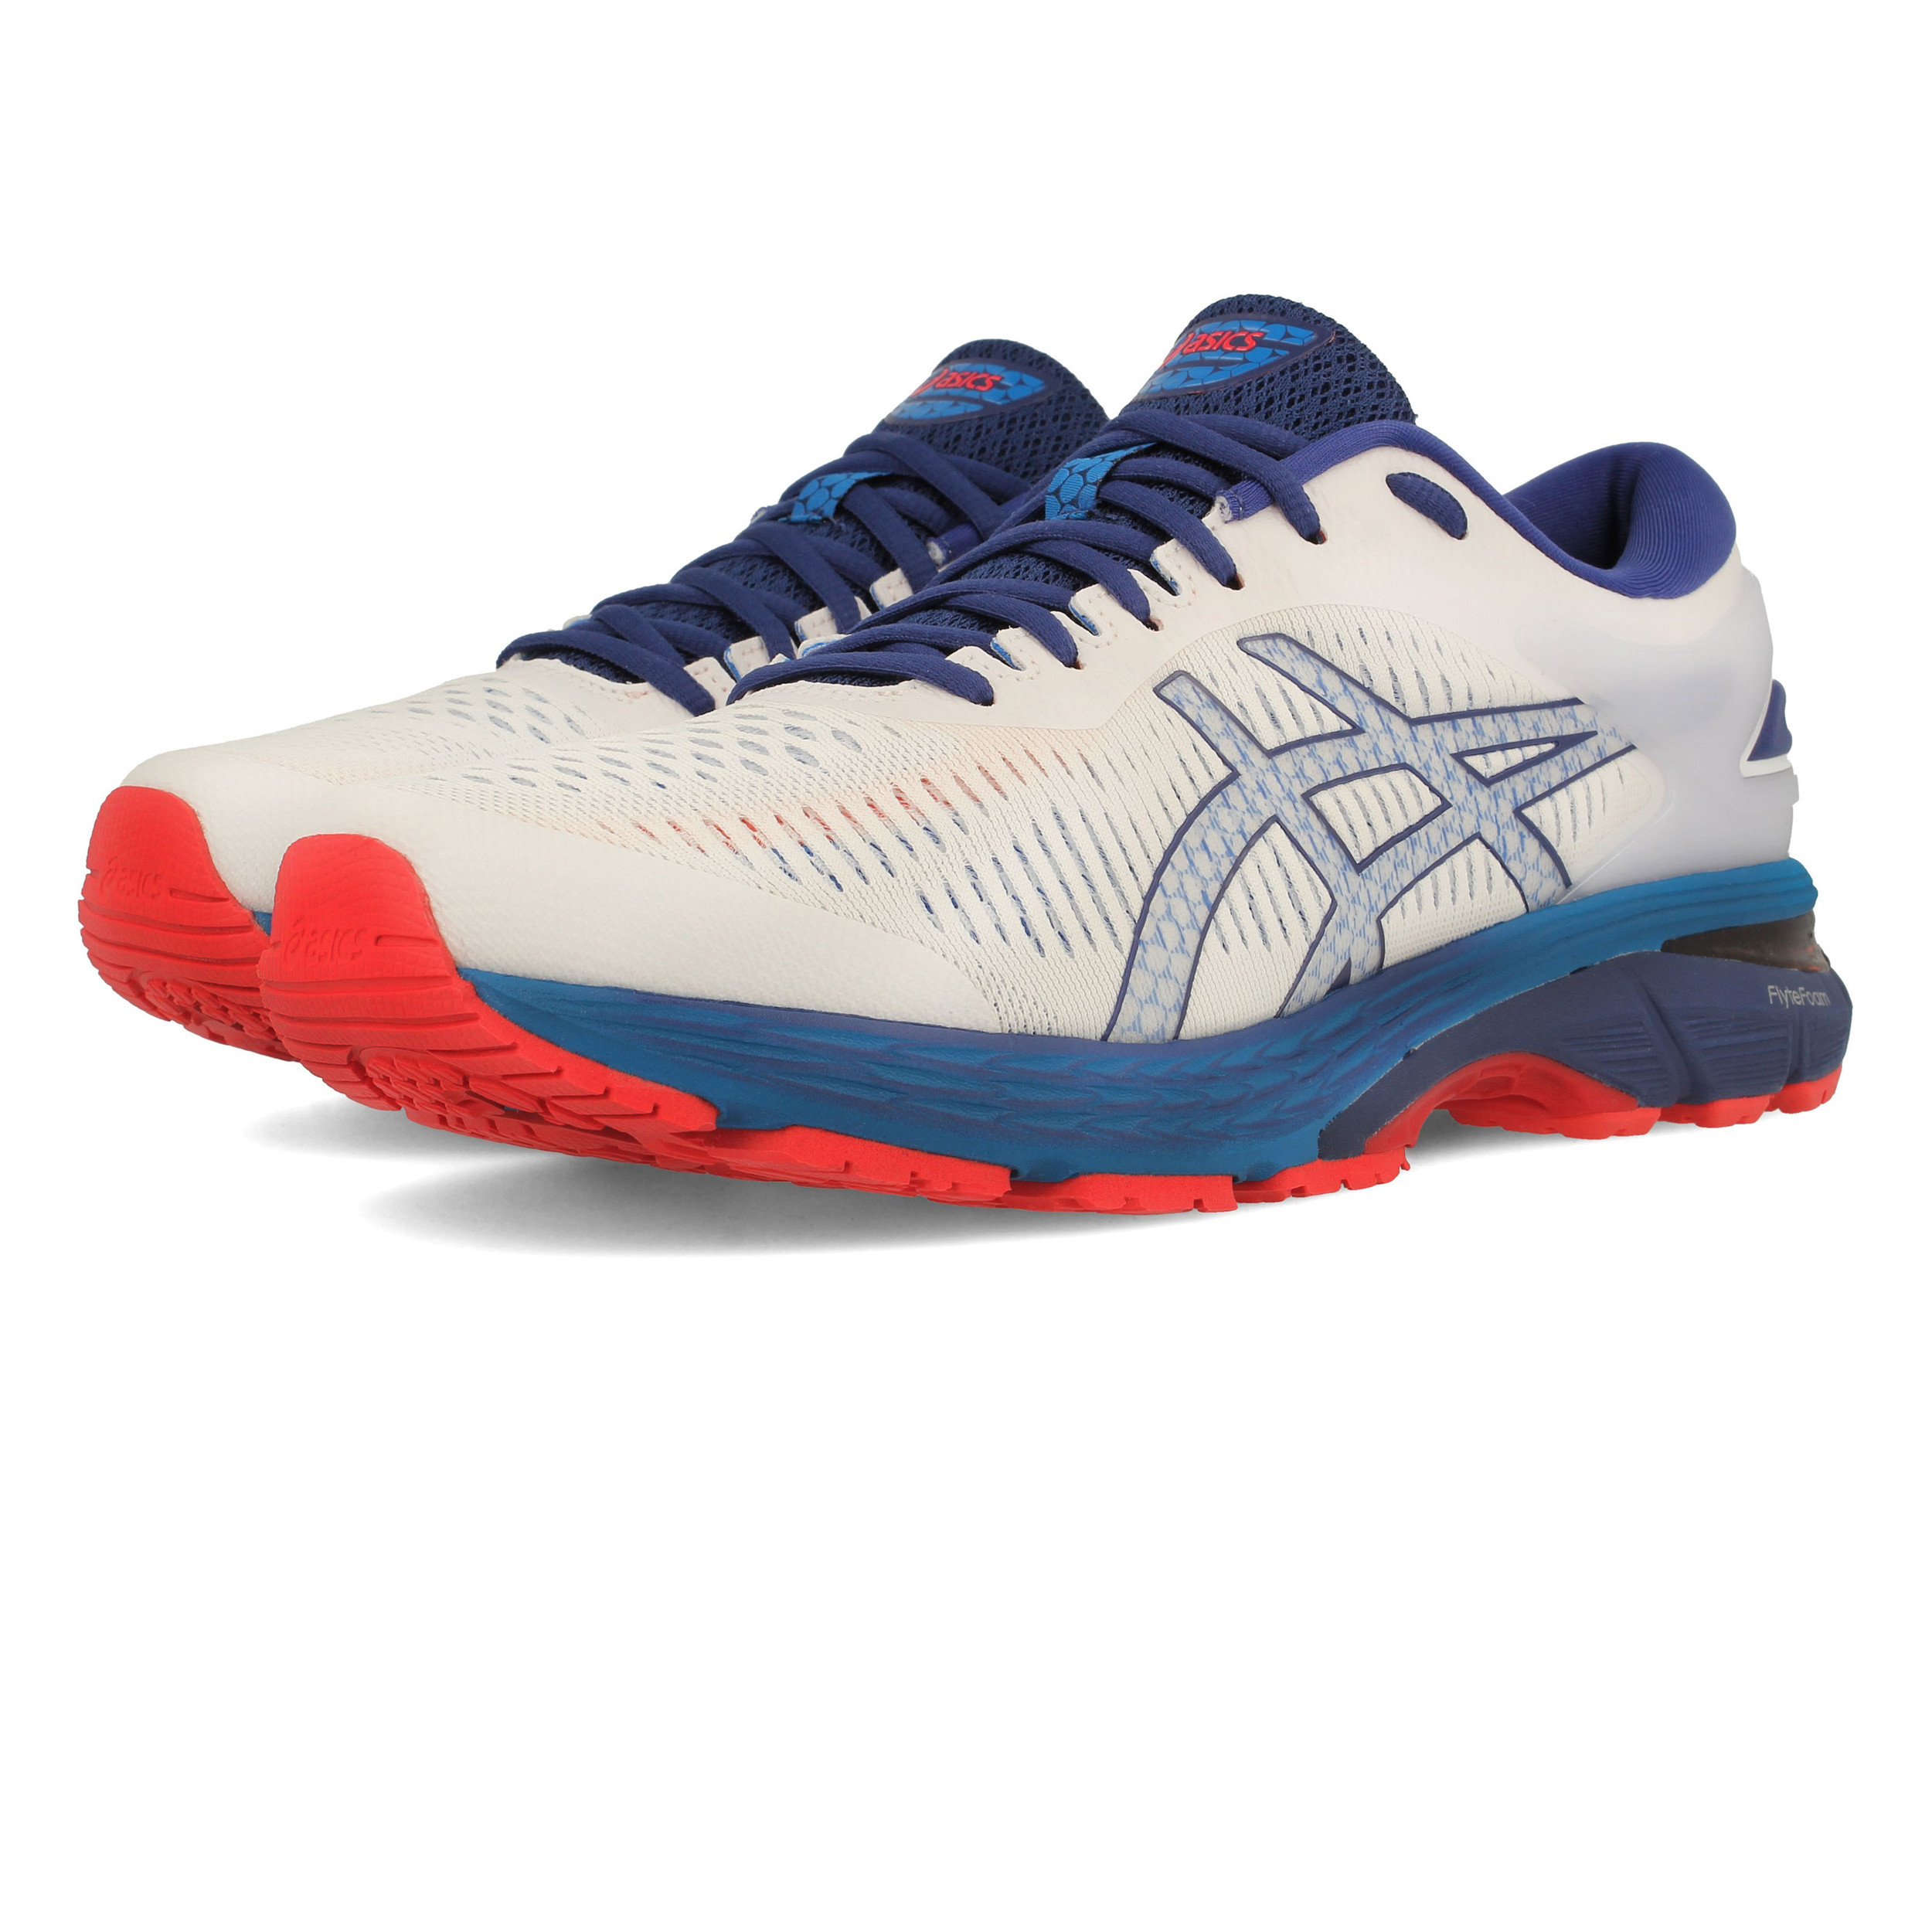 baef450b1796 Asics Mens Gel-Kayano 25 Running Shoes Trainers Sneakers White Sports  Breathable